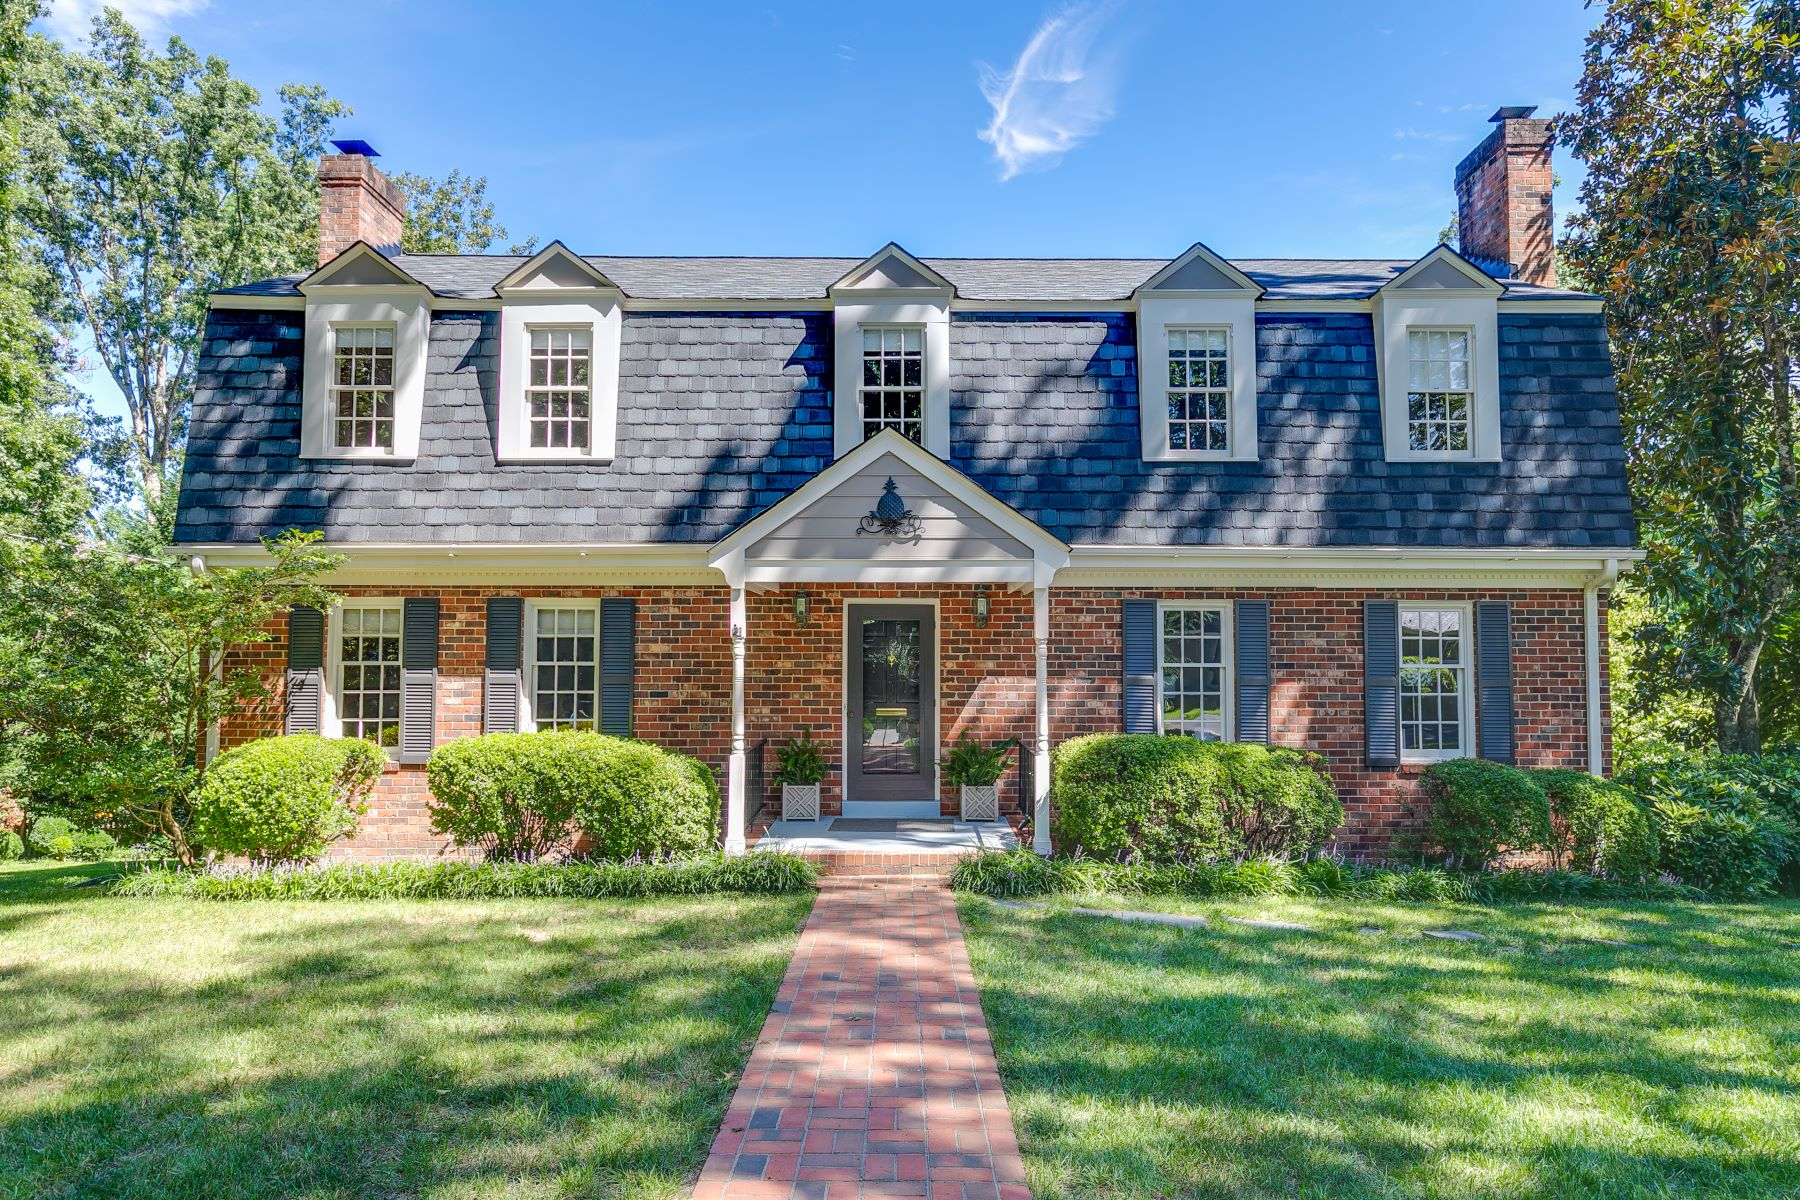 Single Family Homes for Sale at 211 Ralston Road, Henrico, Va, 23229 Henrico, Virginia 23229 United States